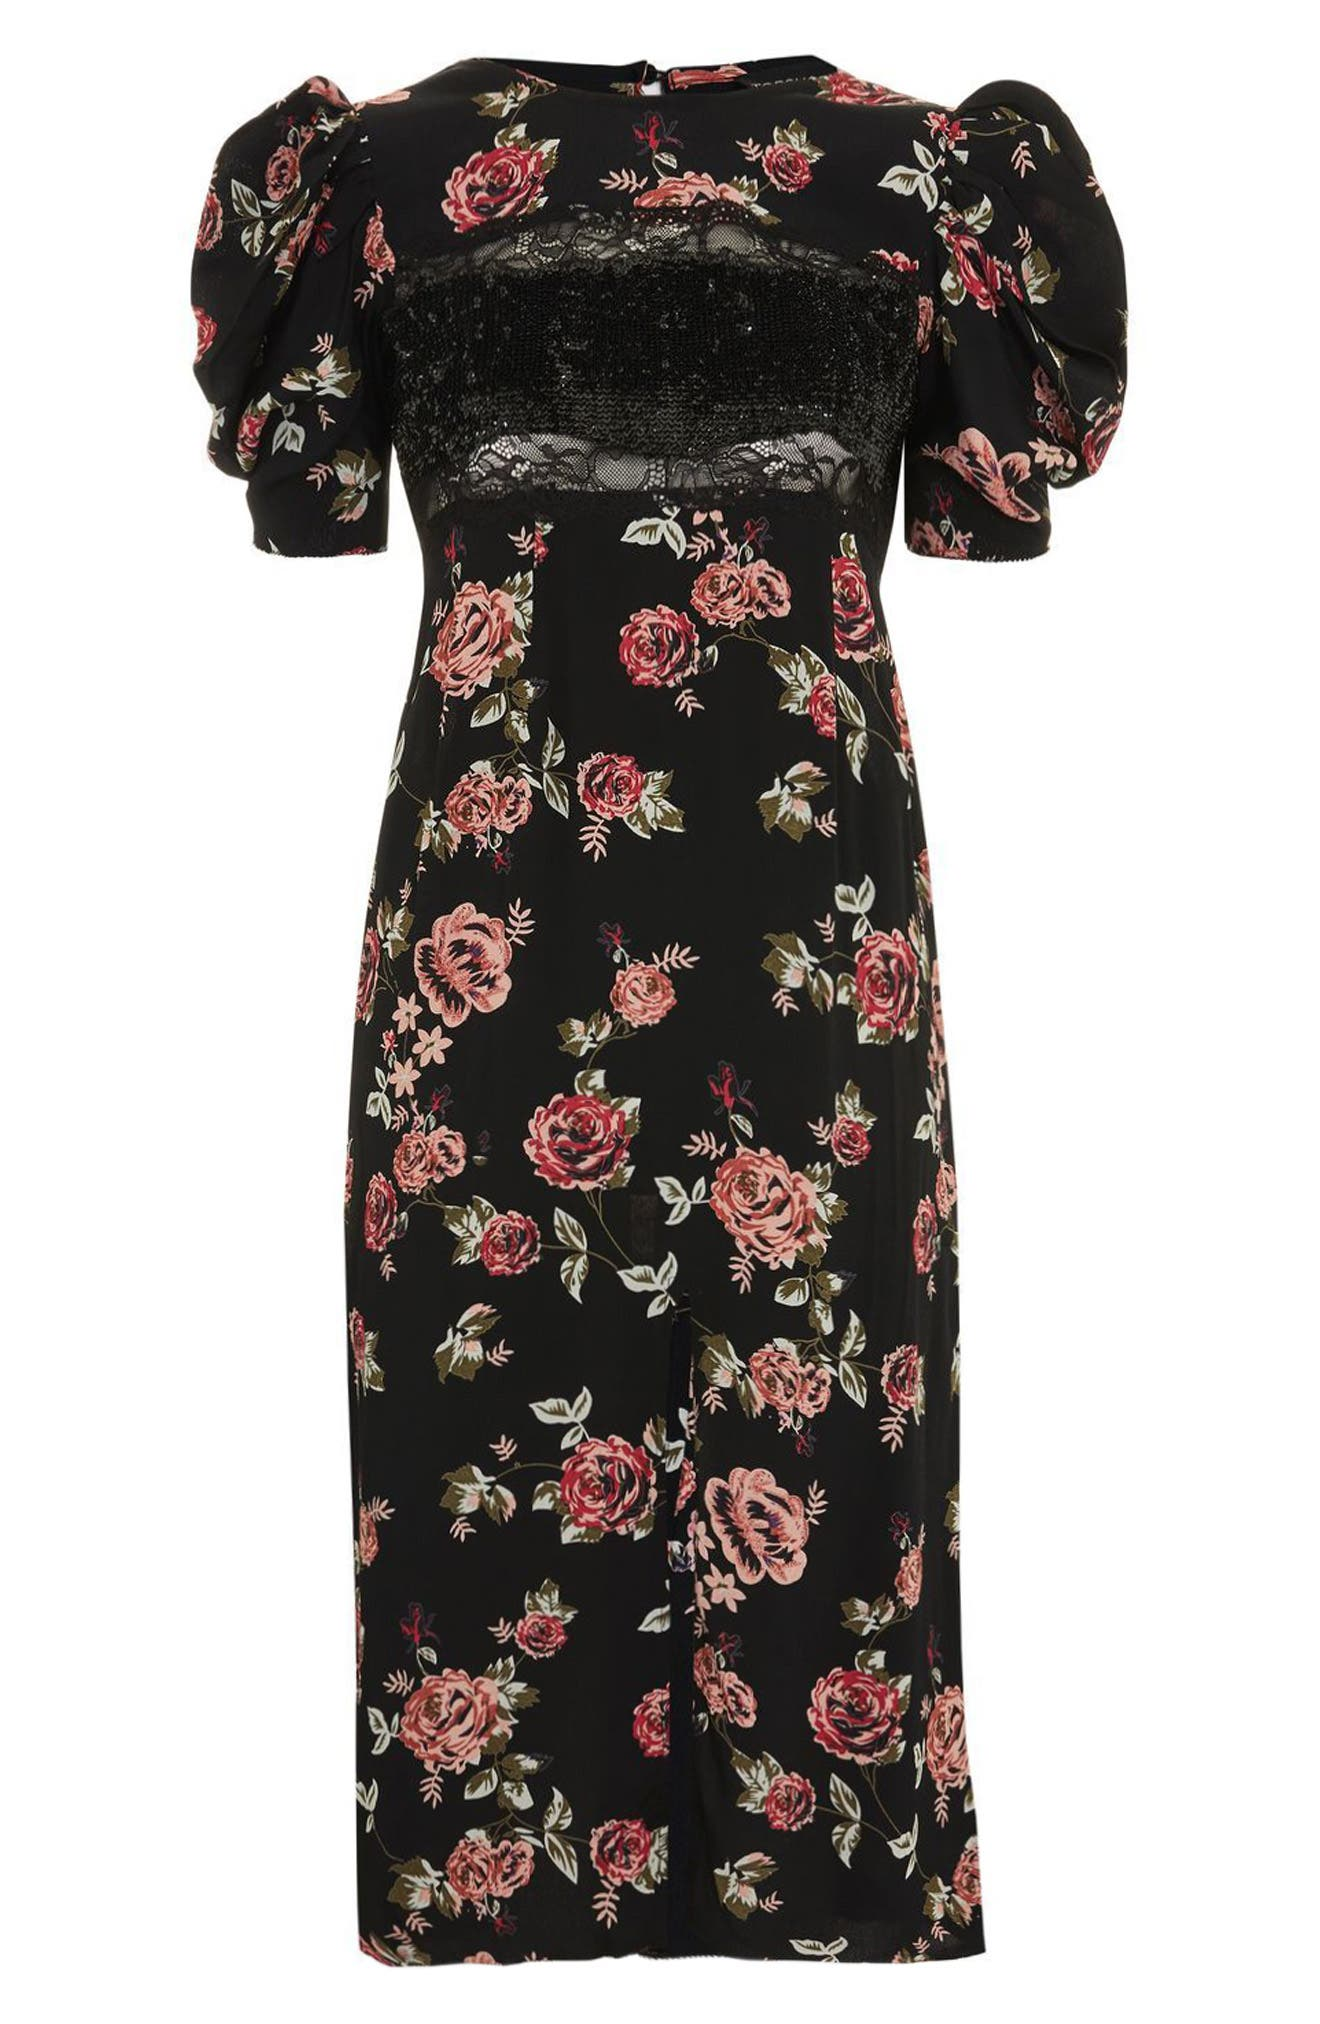 Sequined Floral Puff Sleeve Midi Dress,                             Alternate thumbnail 4, color,                             Black Multi